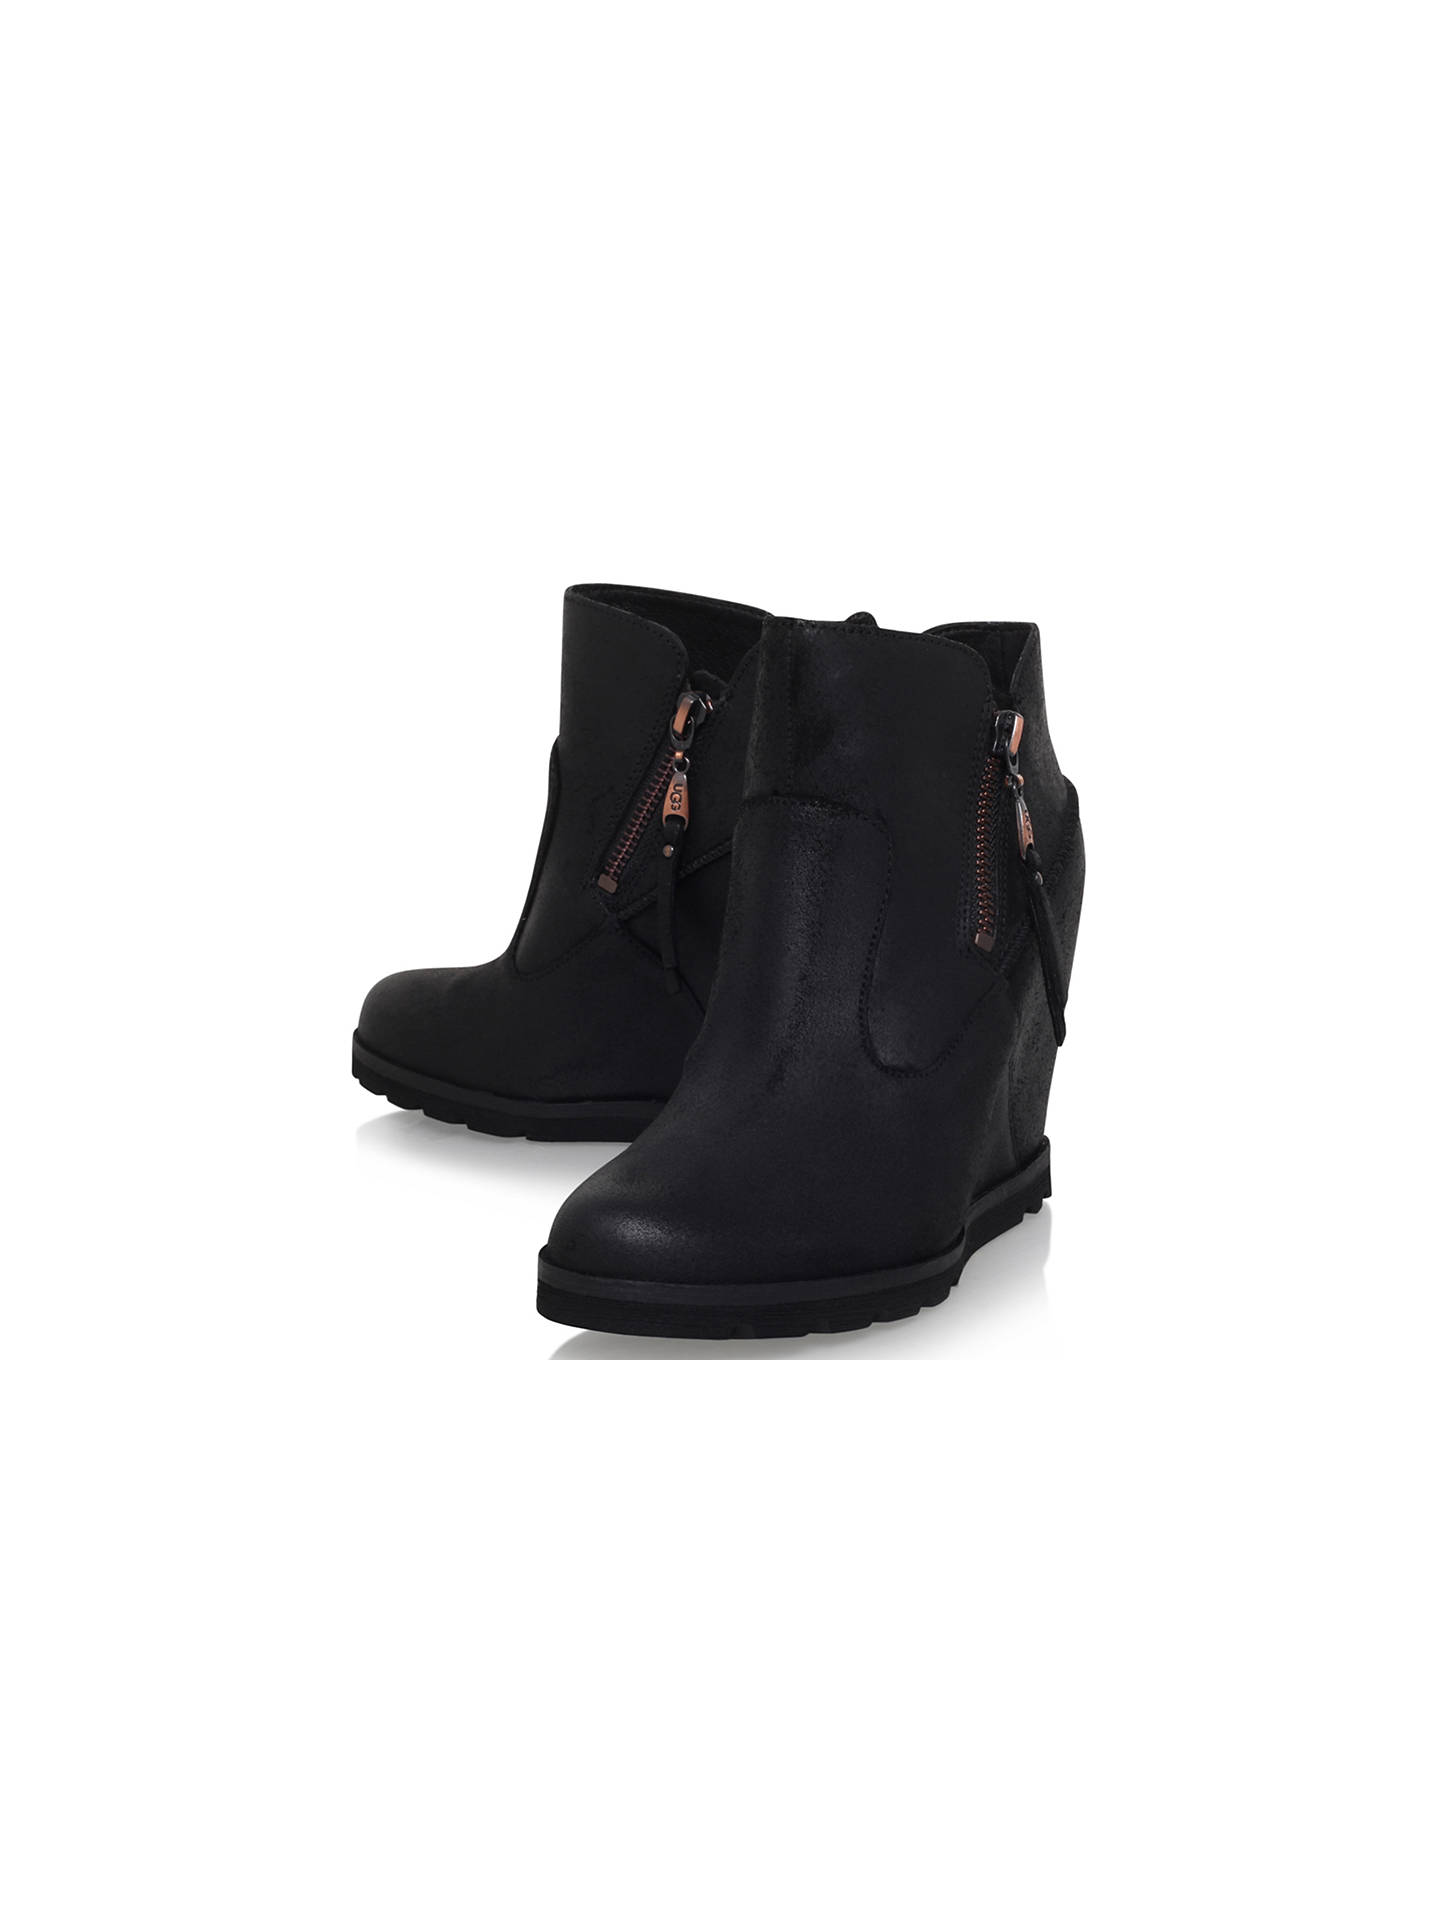 ff1a37c759a UGG Myrna Wedge Heeled Ankle Boots at John Lewis & Partners